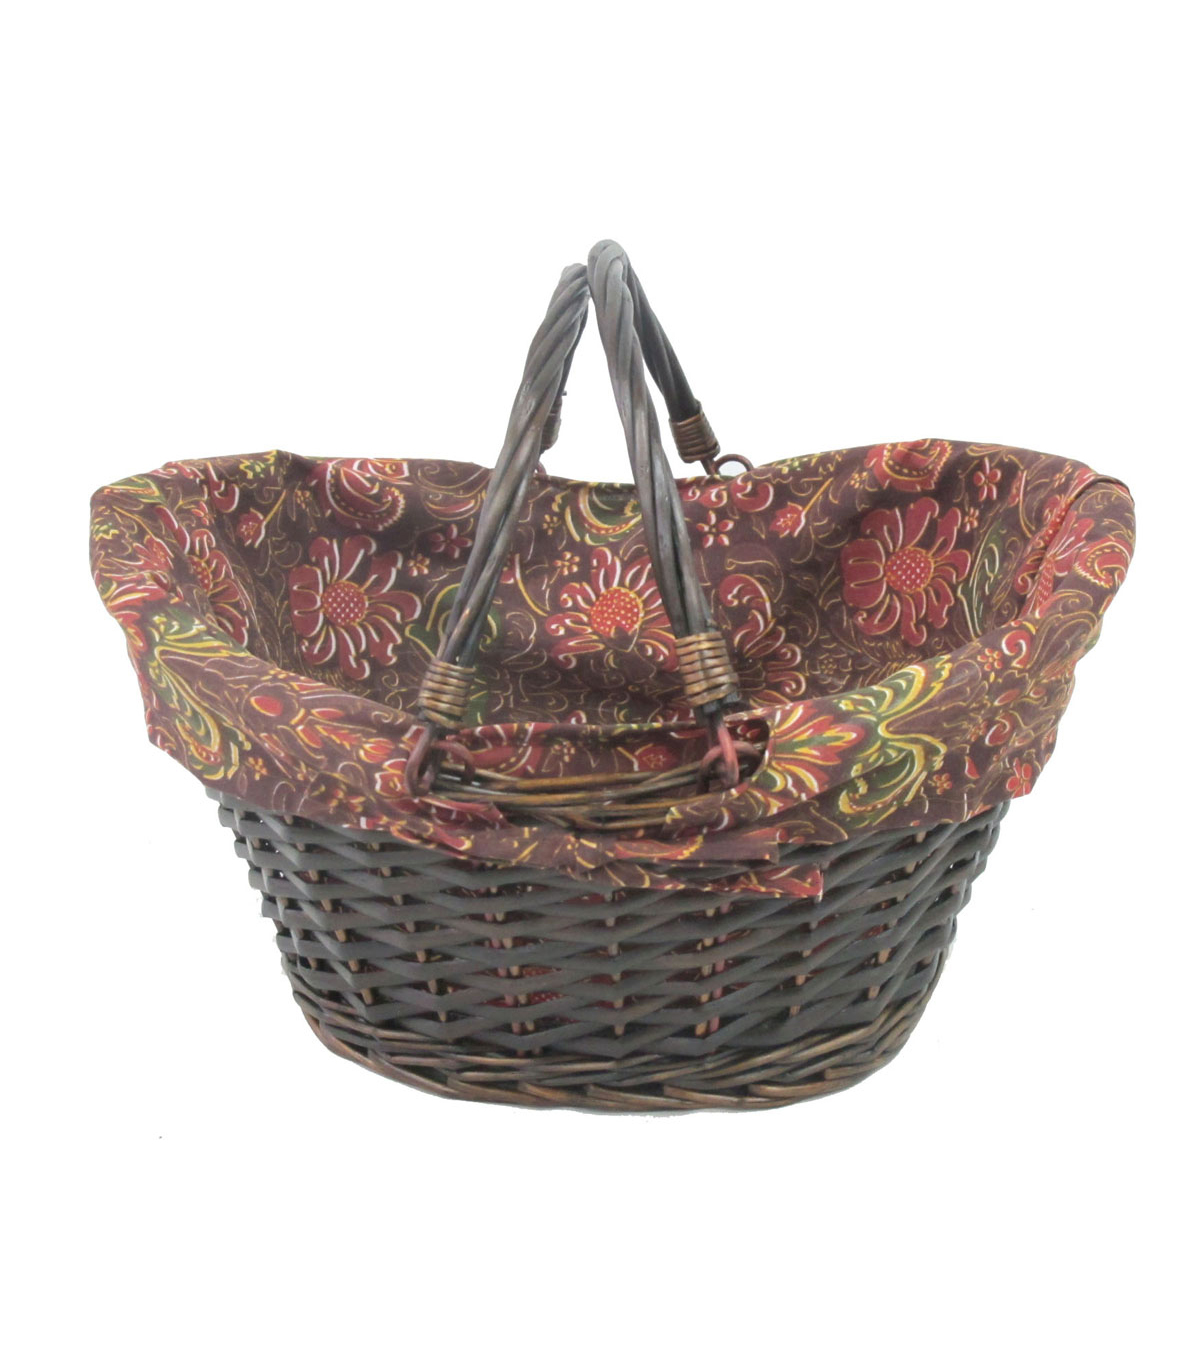 Organizing Essentials Lined Willow Basket with Handles